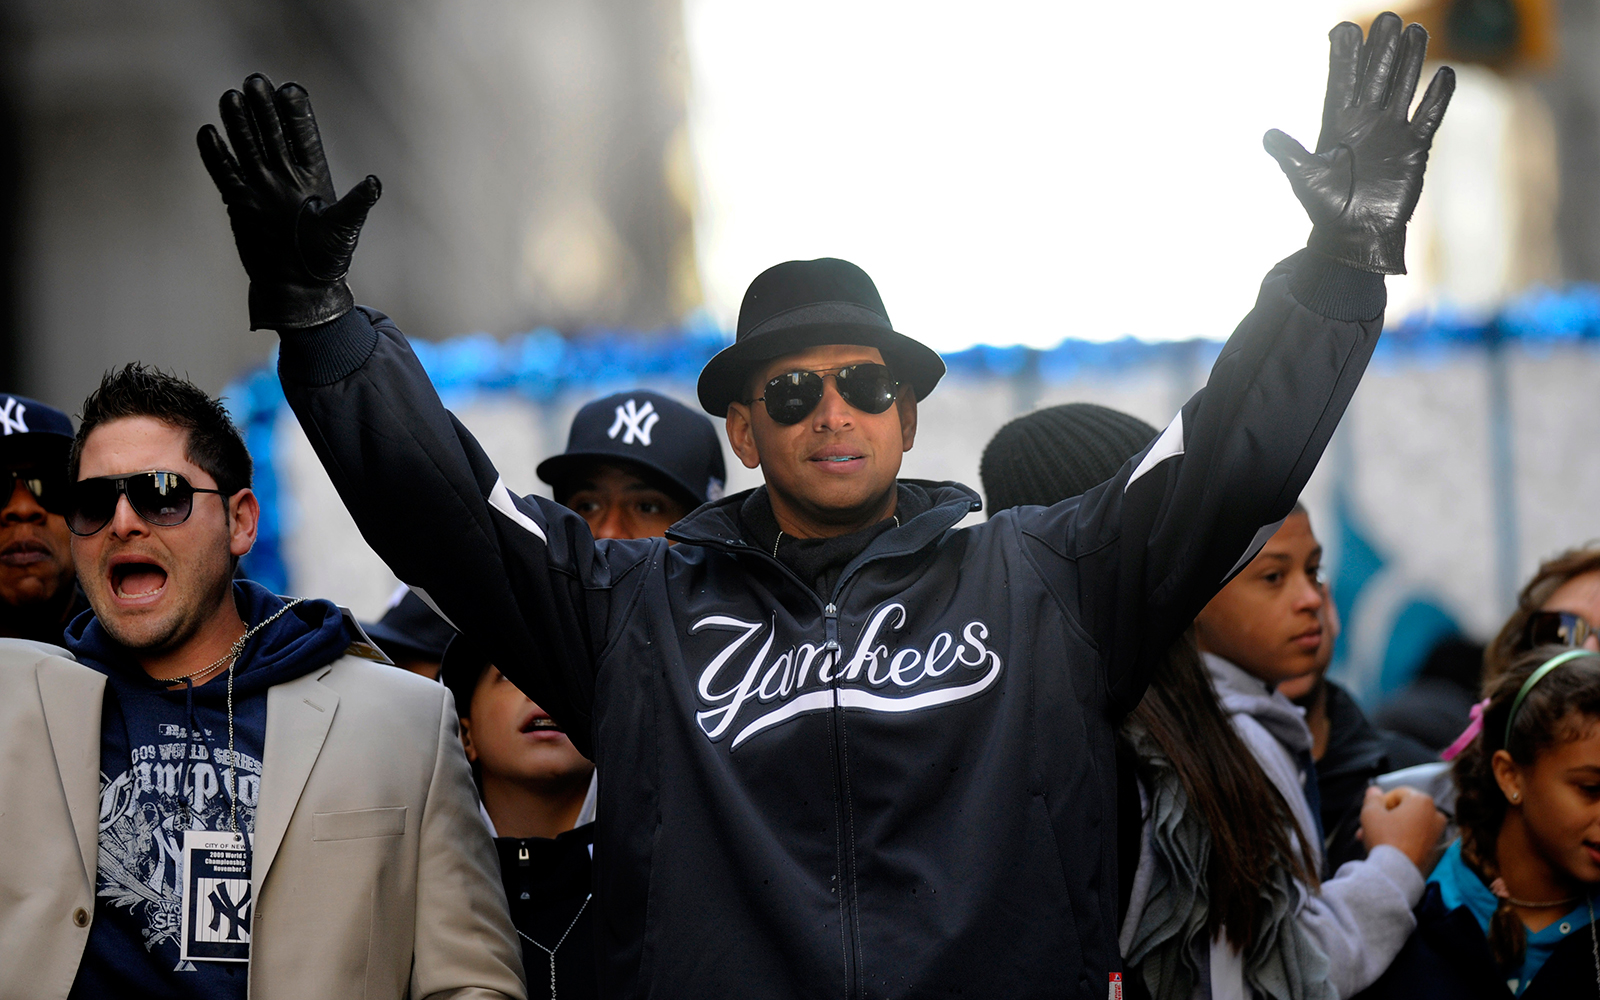 The Education of Alex Rodriguez